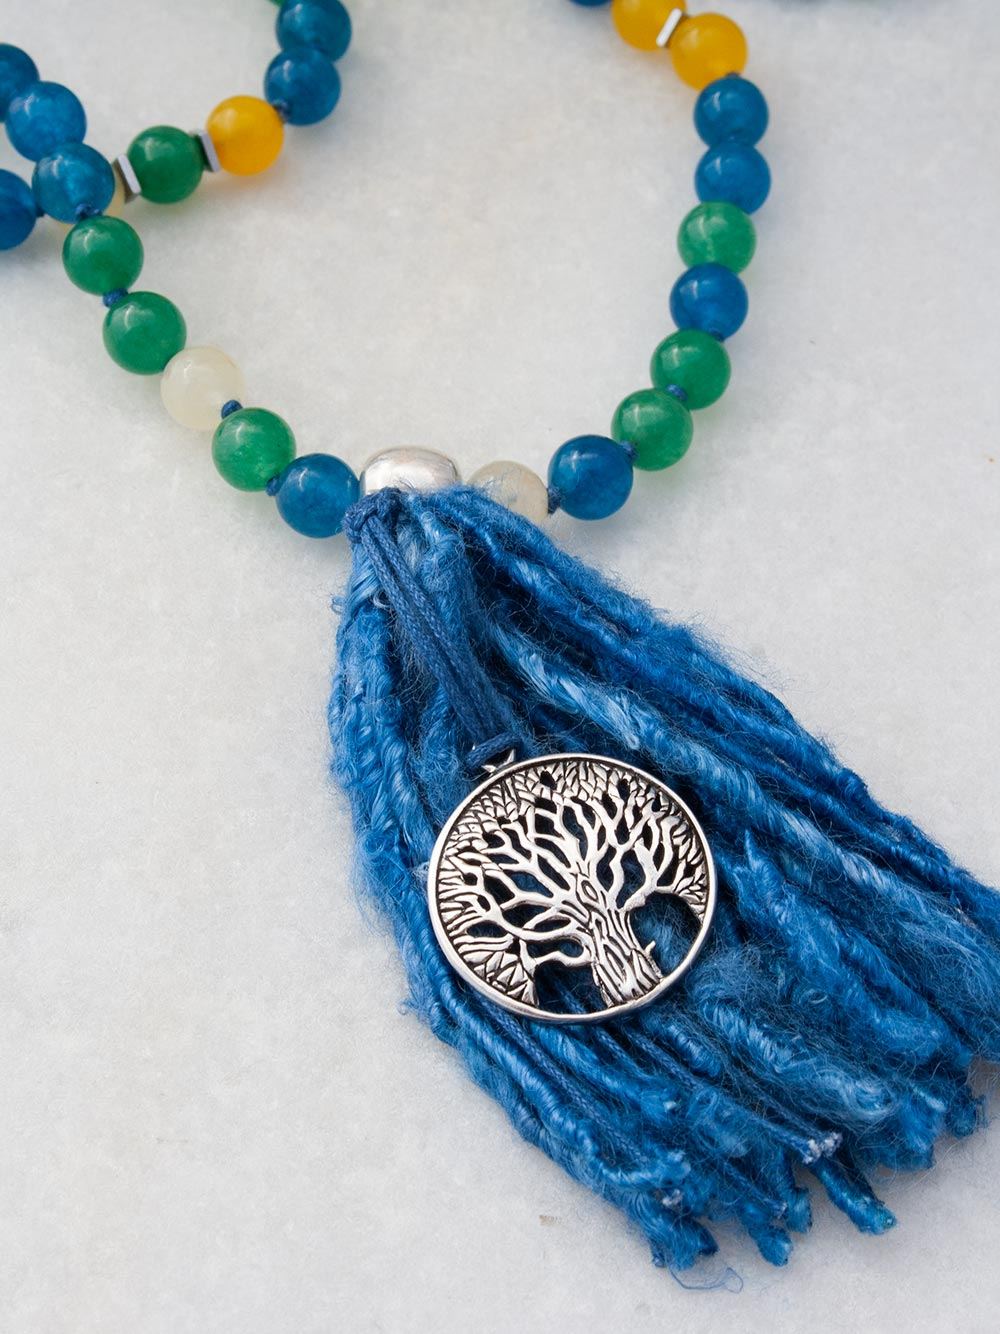 Serendipity Mala in peacock blue/sylvan green/citrine and aurora gloria yellow aventurine, with 925 silver tree of life. Tree of life/tassel view.